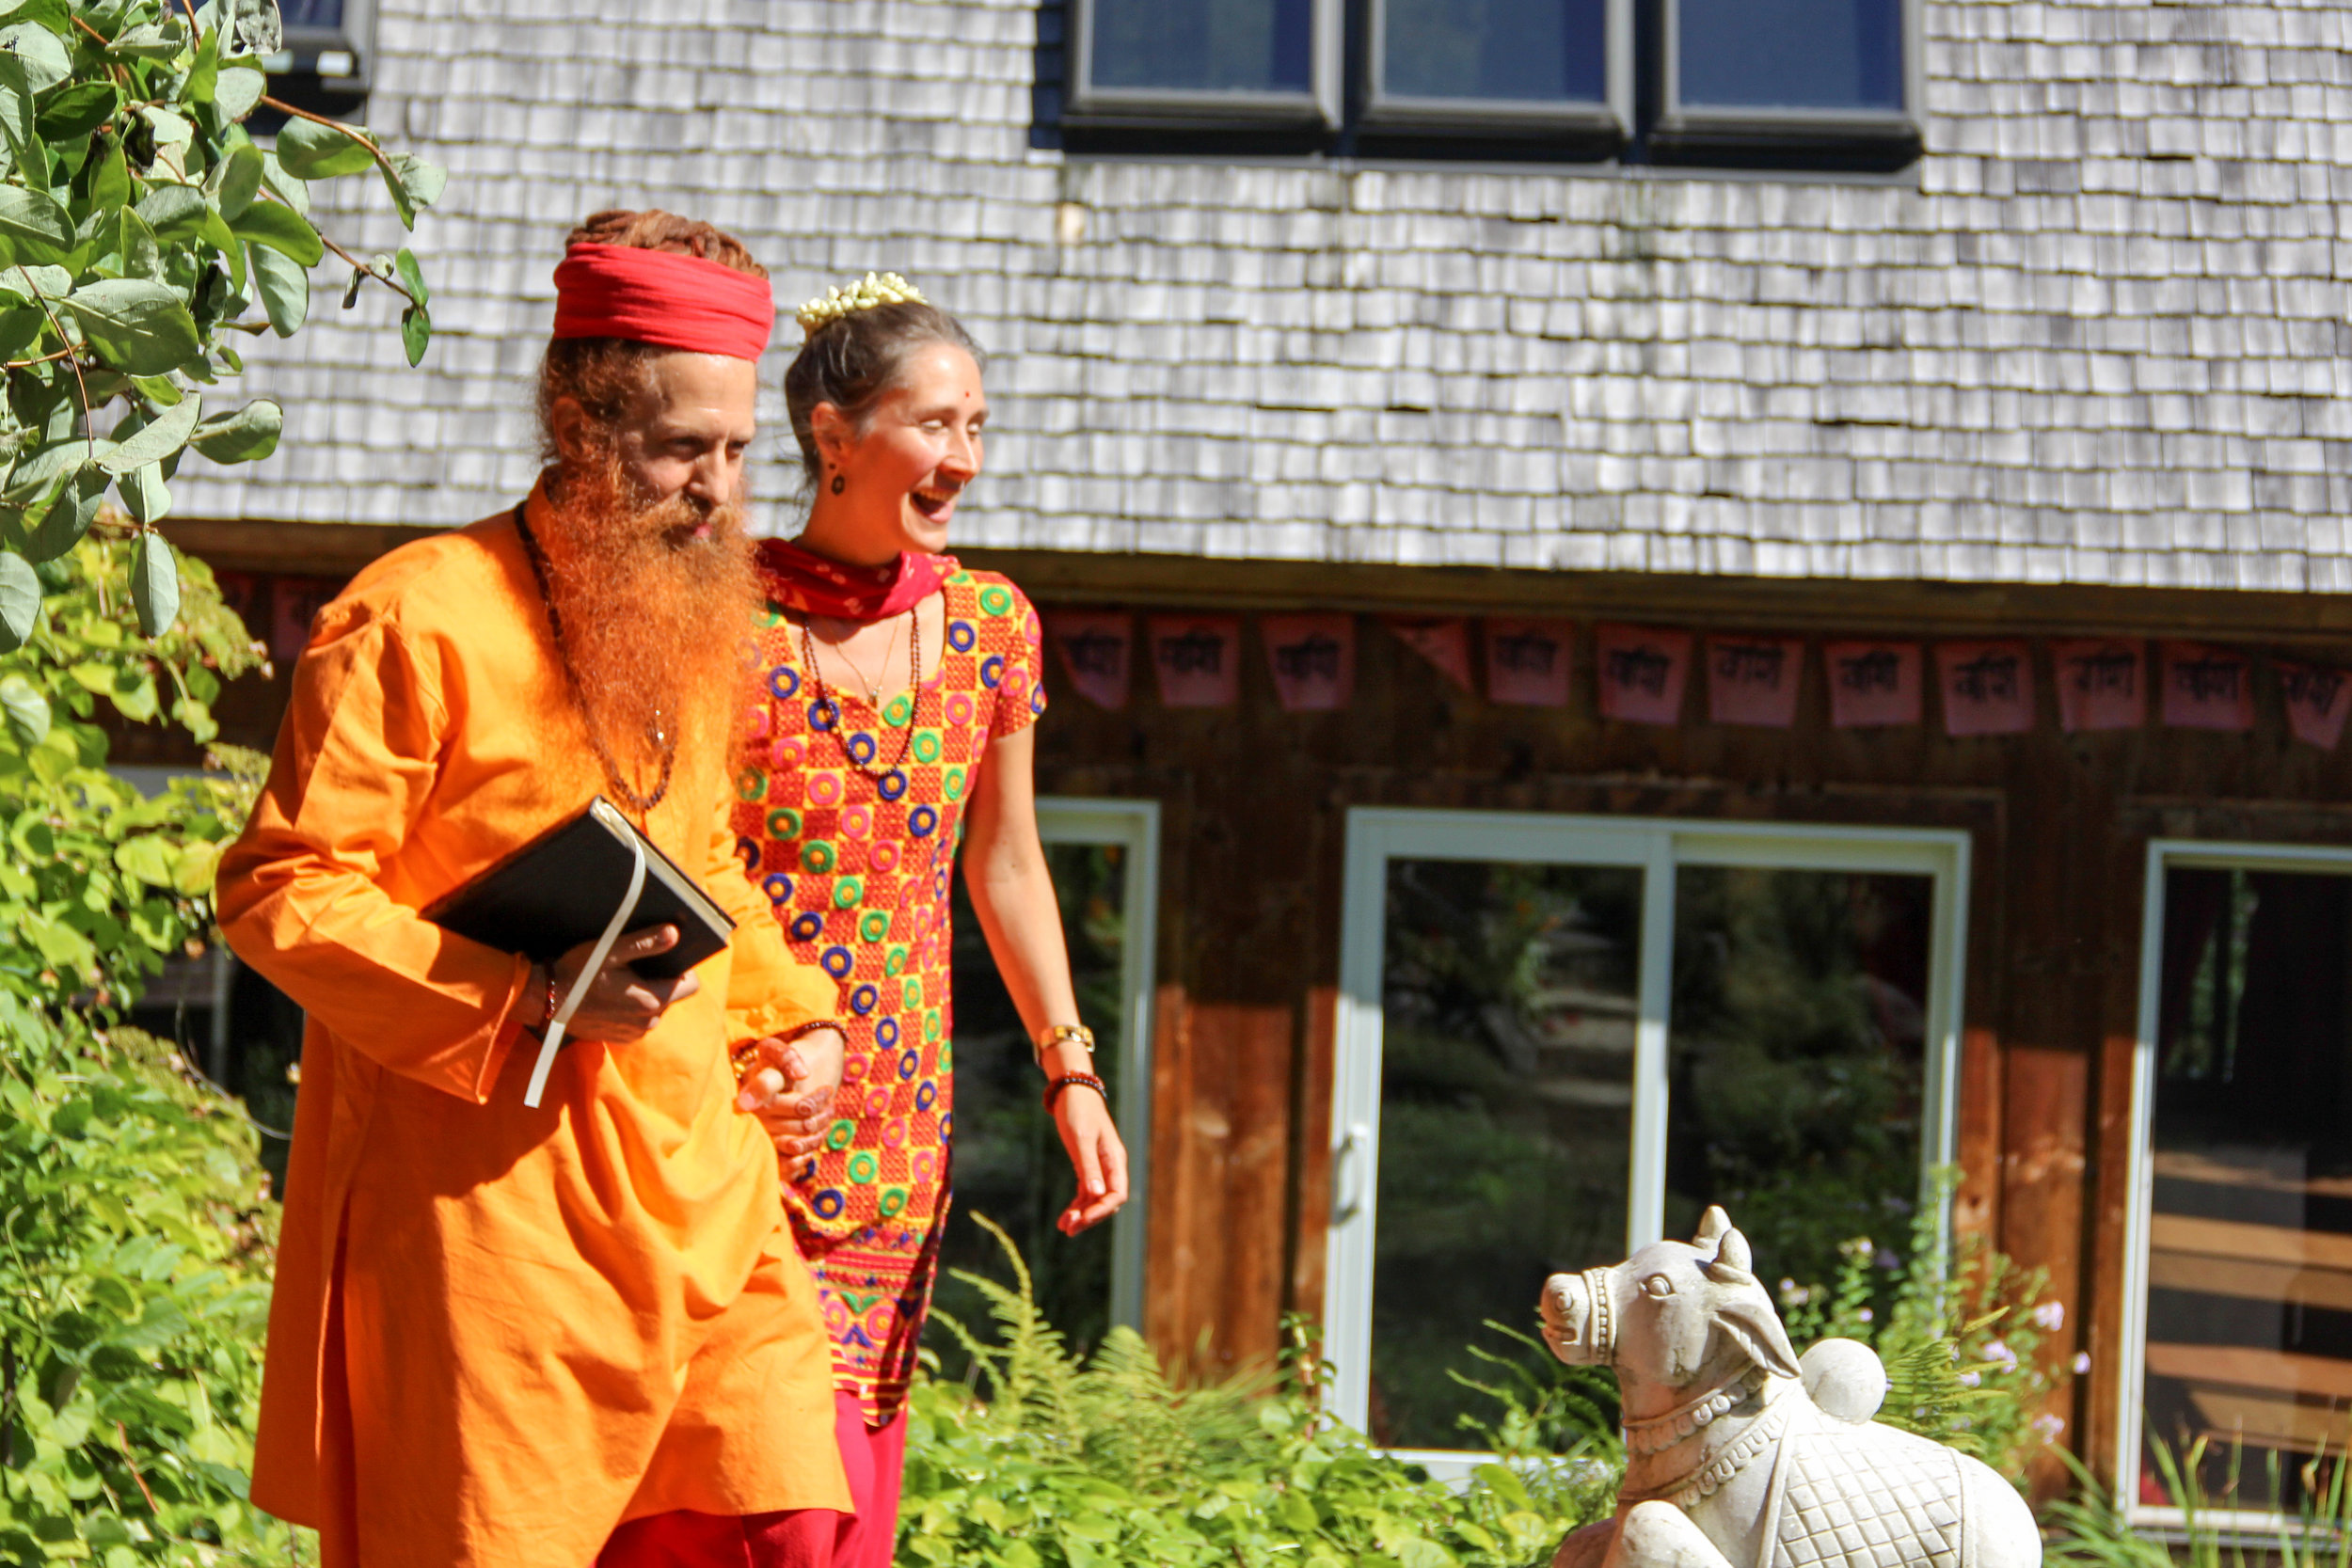 """Our Gurus, lovingly and respectfully known as Baba and Amma, """"Father and Mother"""", after leading the marriage ceremony held for Bhavani and Amara, residant Yogis at Hridaya Hermitage."""